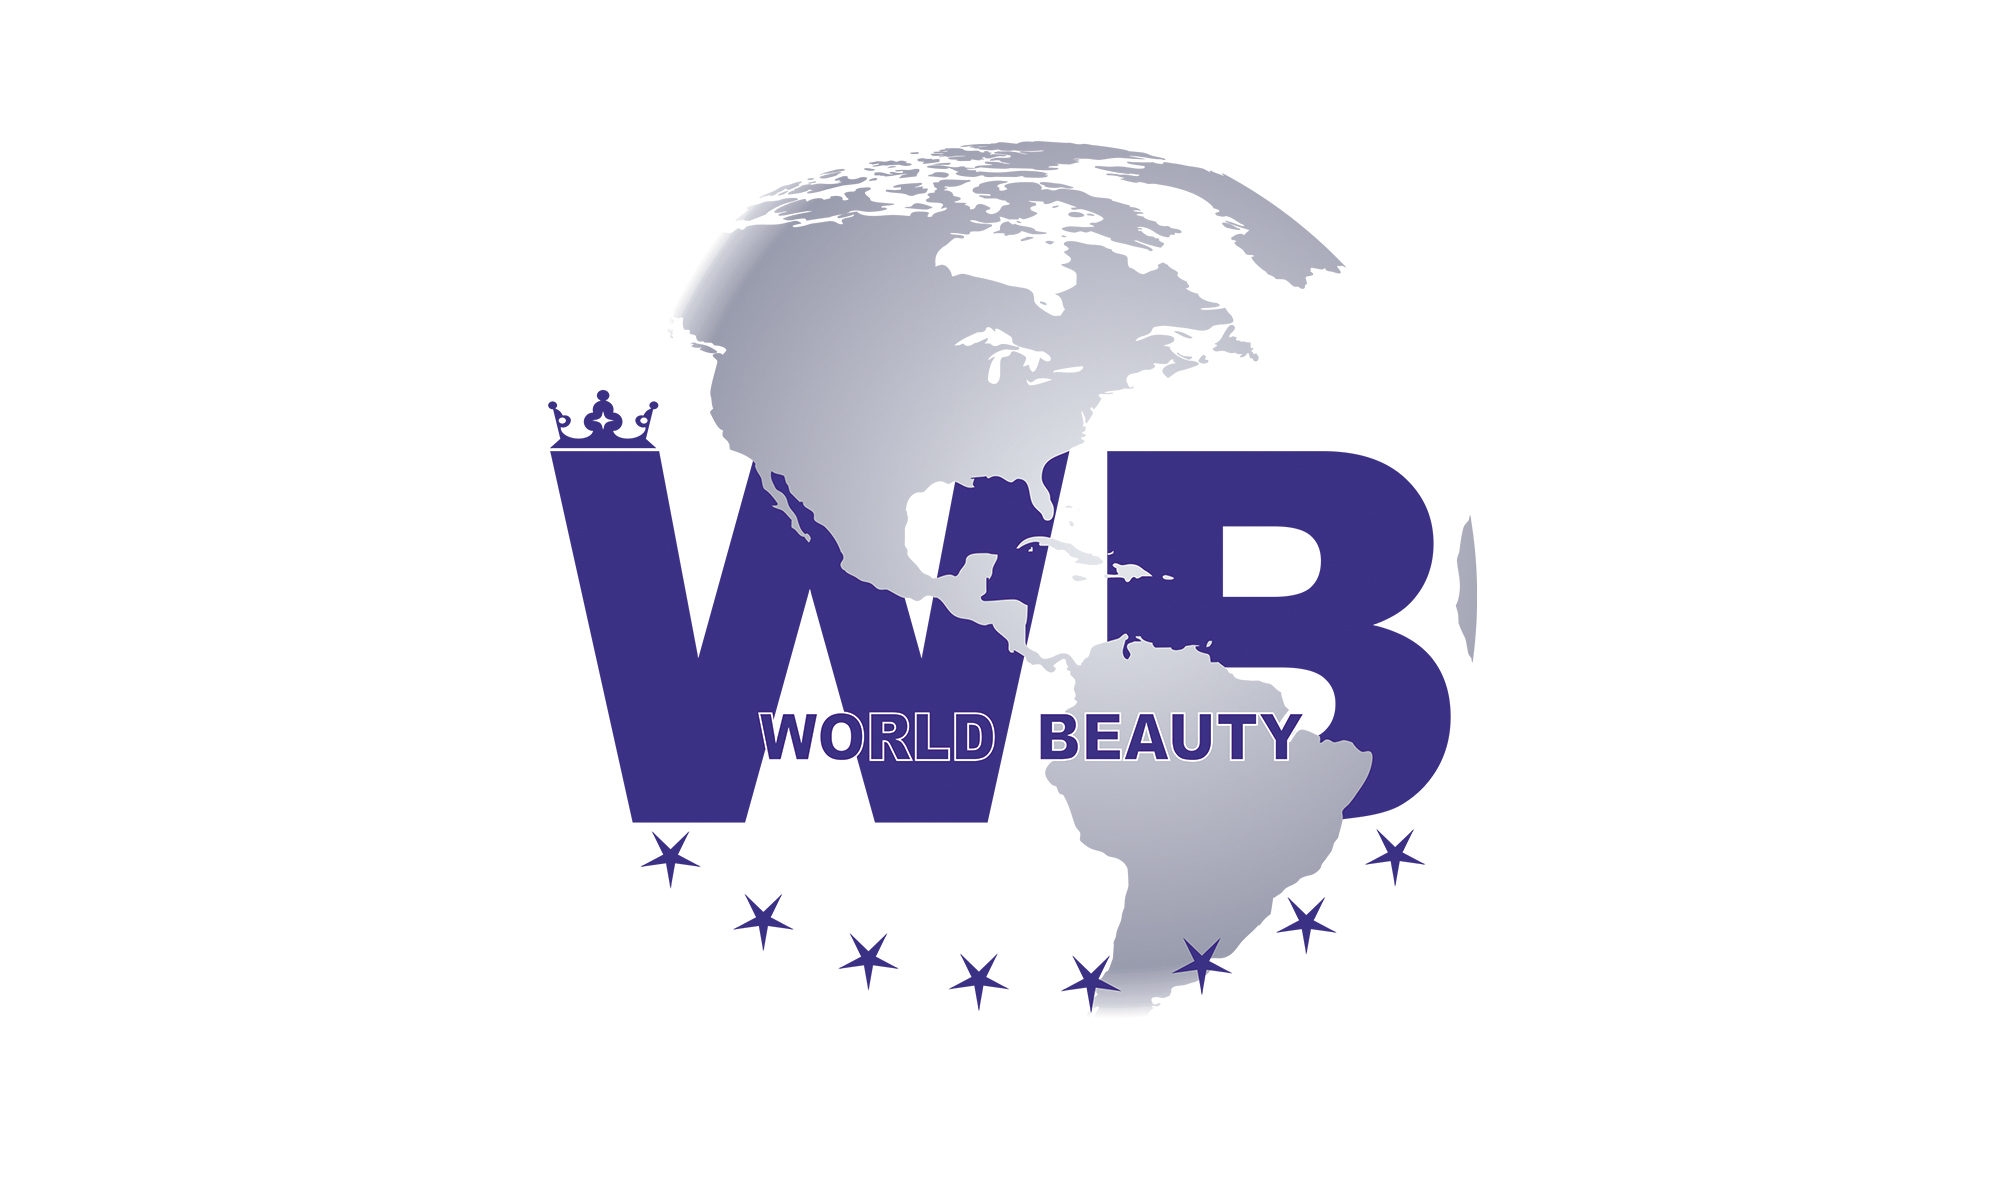 WORLD BEAUTY